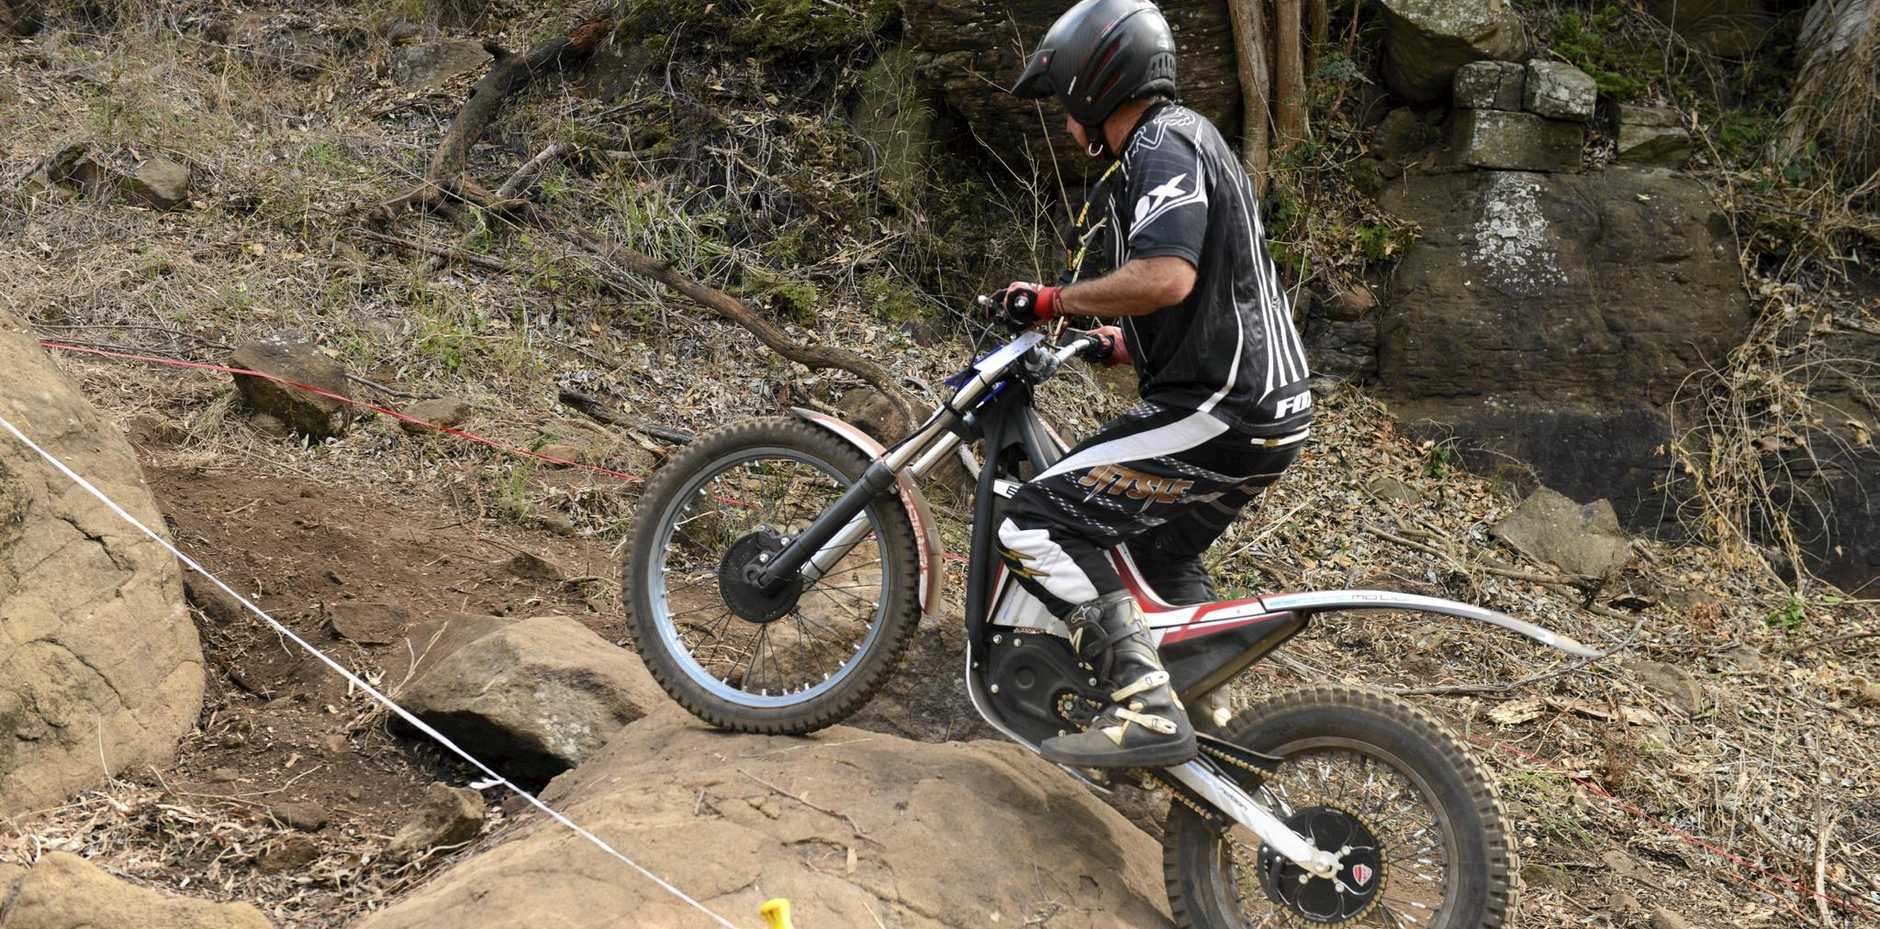 Riders will put their cross country skills to the test as the motorcycle trials arrive in Stanthorpe.